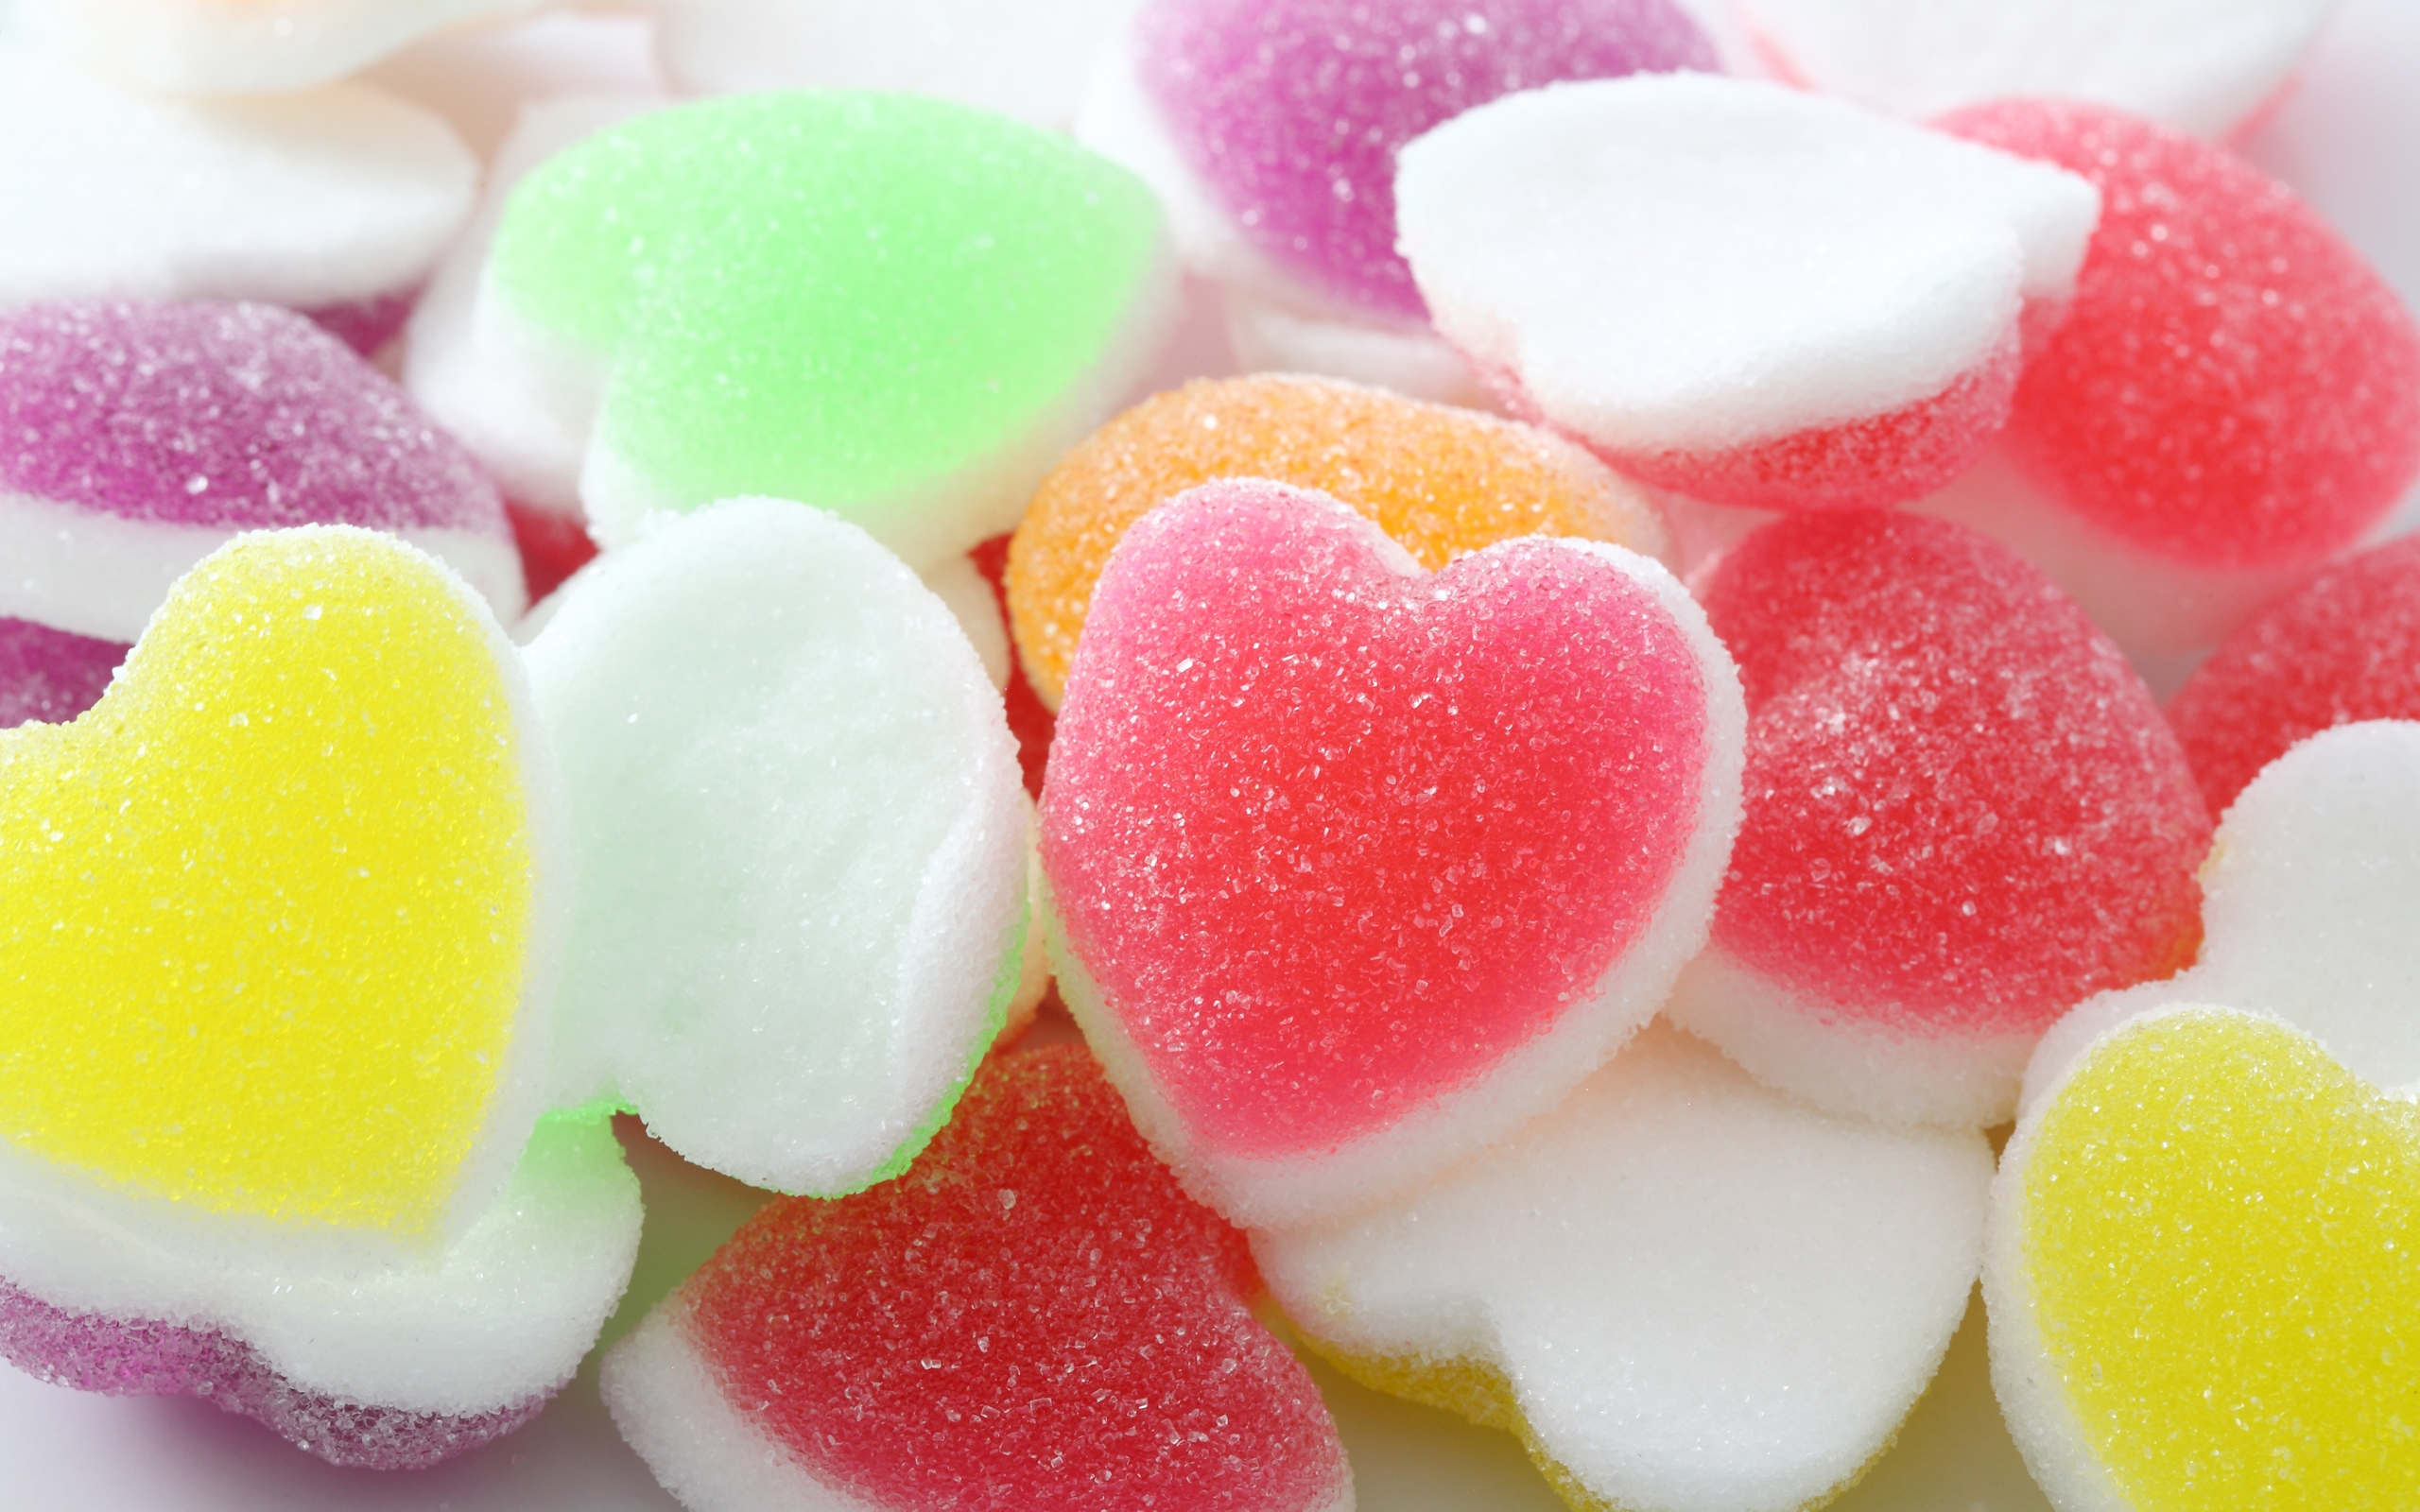 Free Heart Candy Wallpaper 42360 2560x1600 px HDWallSourcecom